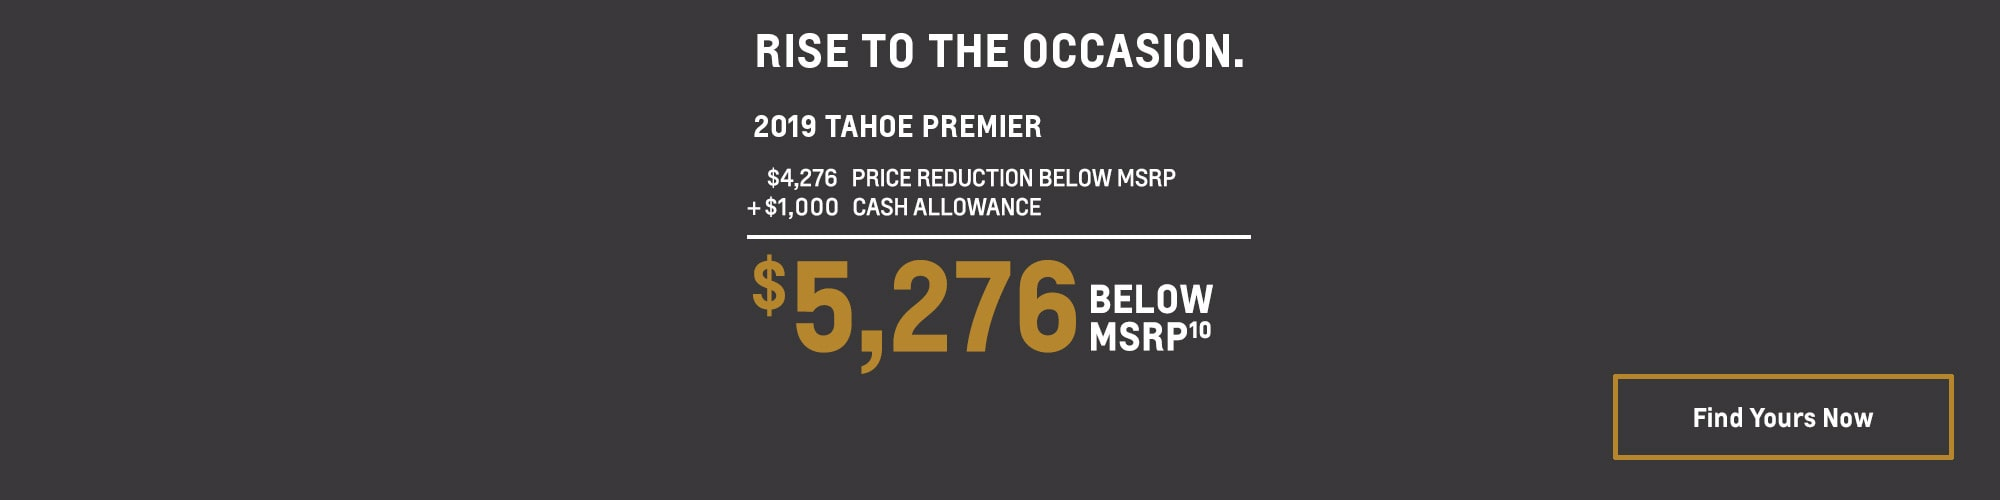 2019 Tahoe: $5,276 Below MSPR